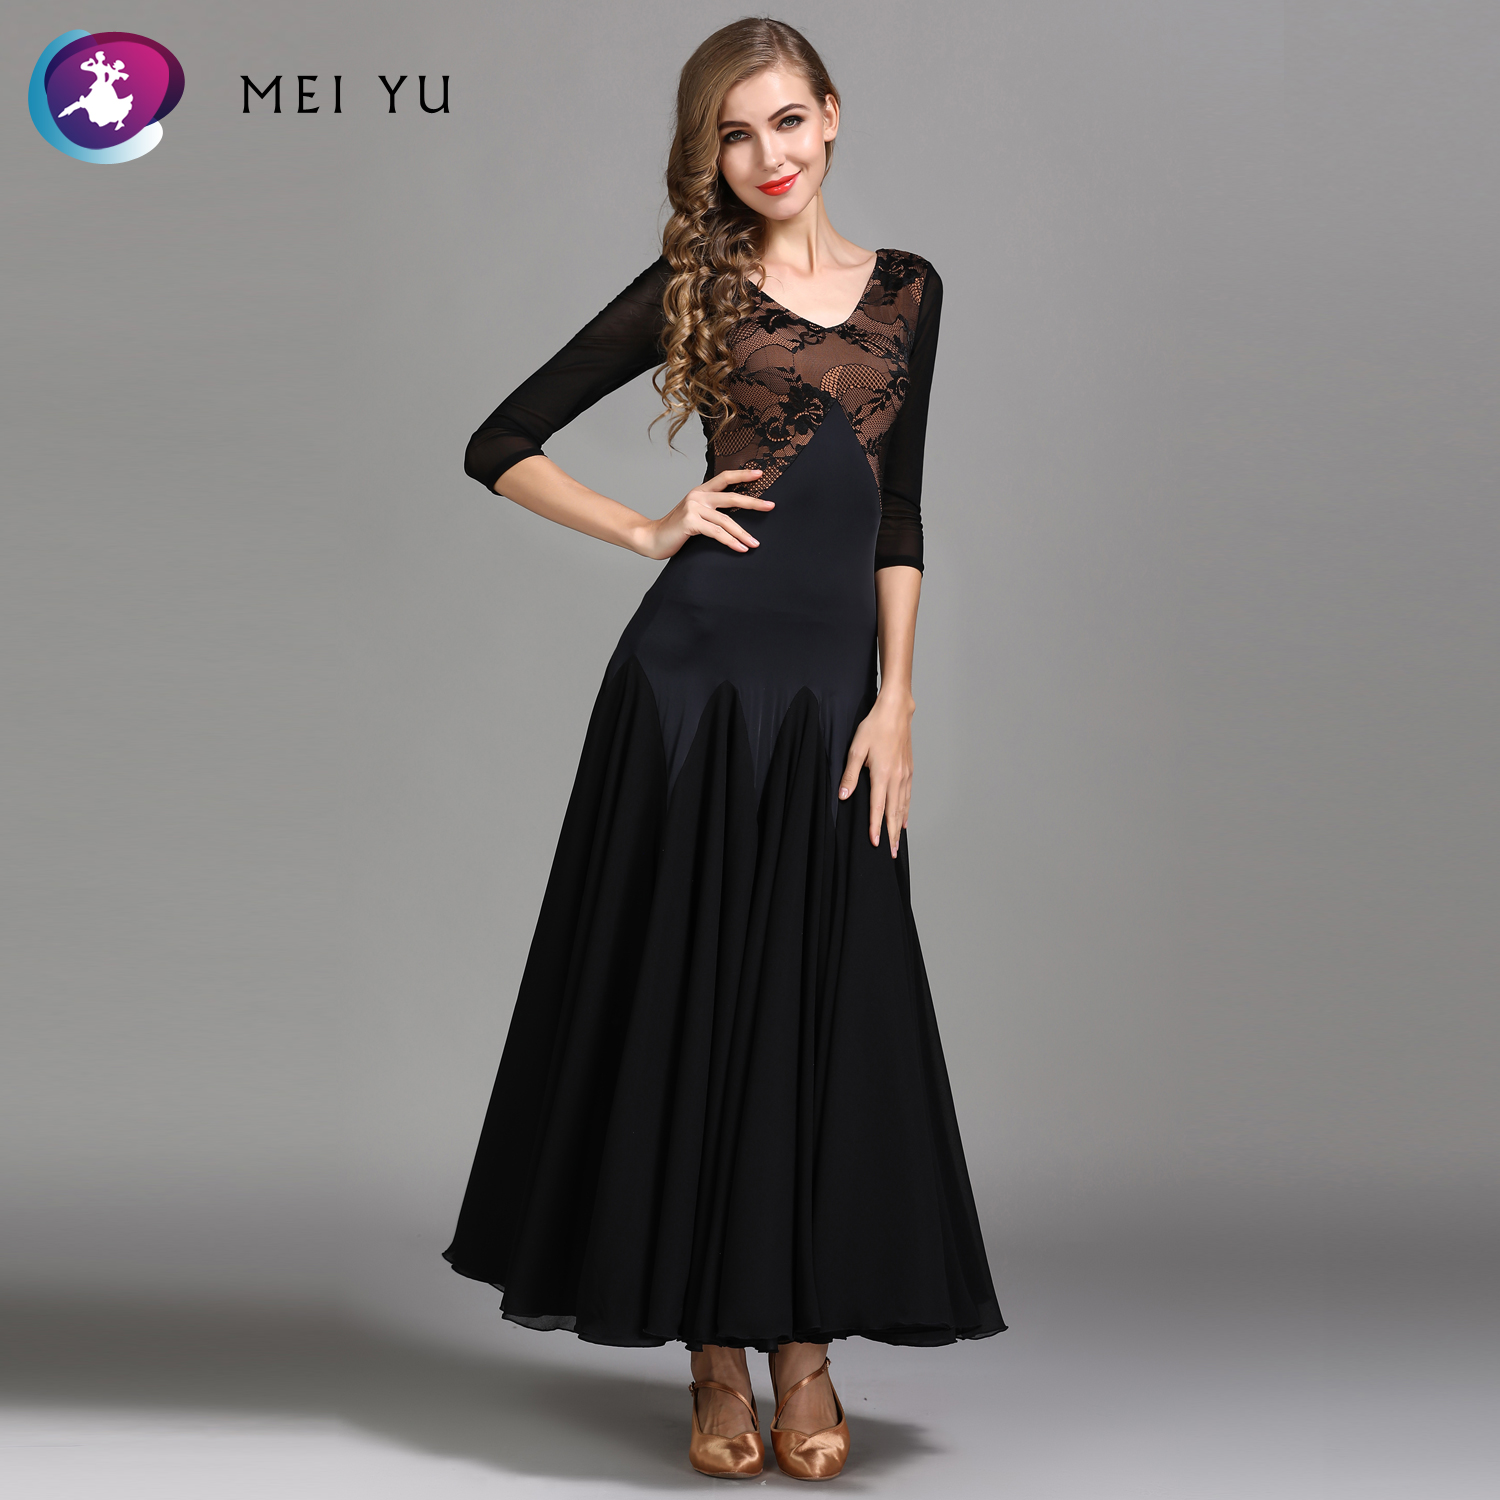 Generous Mei Yu My788 Modern Dance Costume Women Lady Adult Waltzing Tango Lace Dancing Dress Ballroom Costume Evening Party Dress Novelty & Special Use